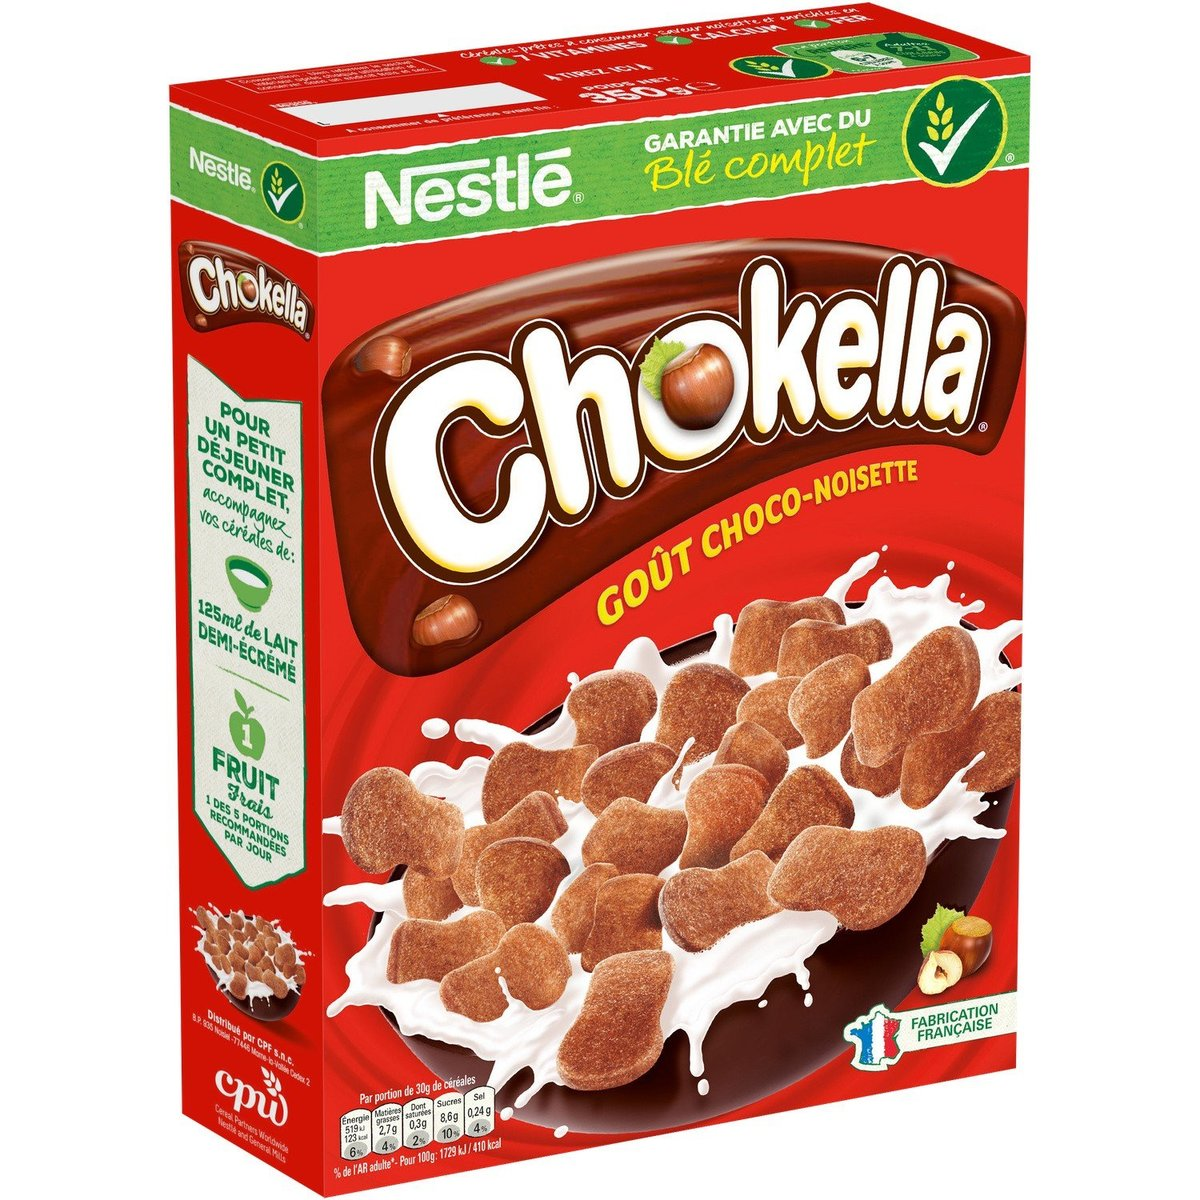 NESTLE - Chokella Chocolate Cereals - 350g